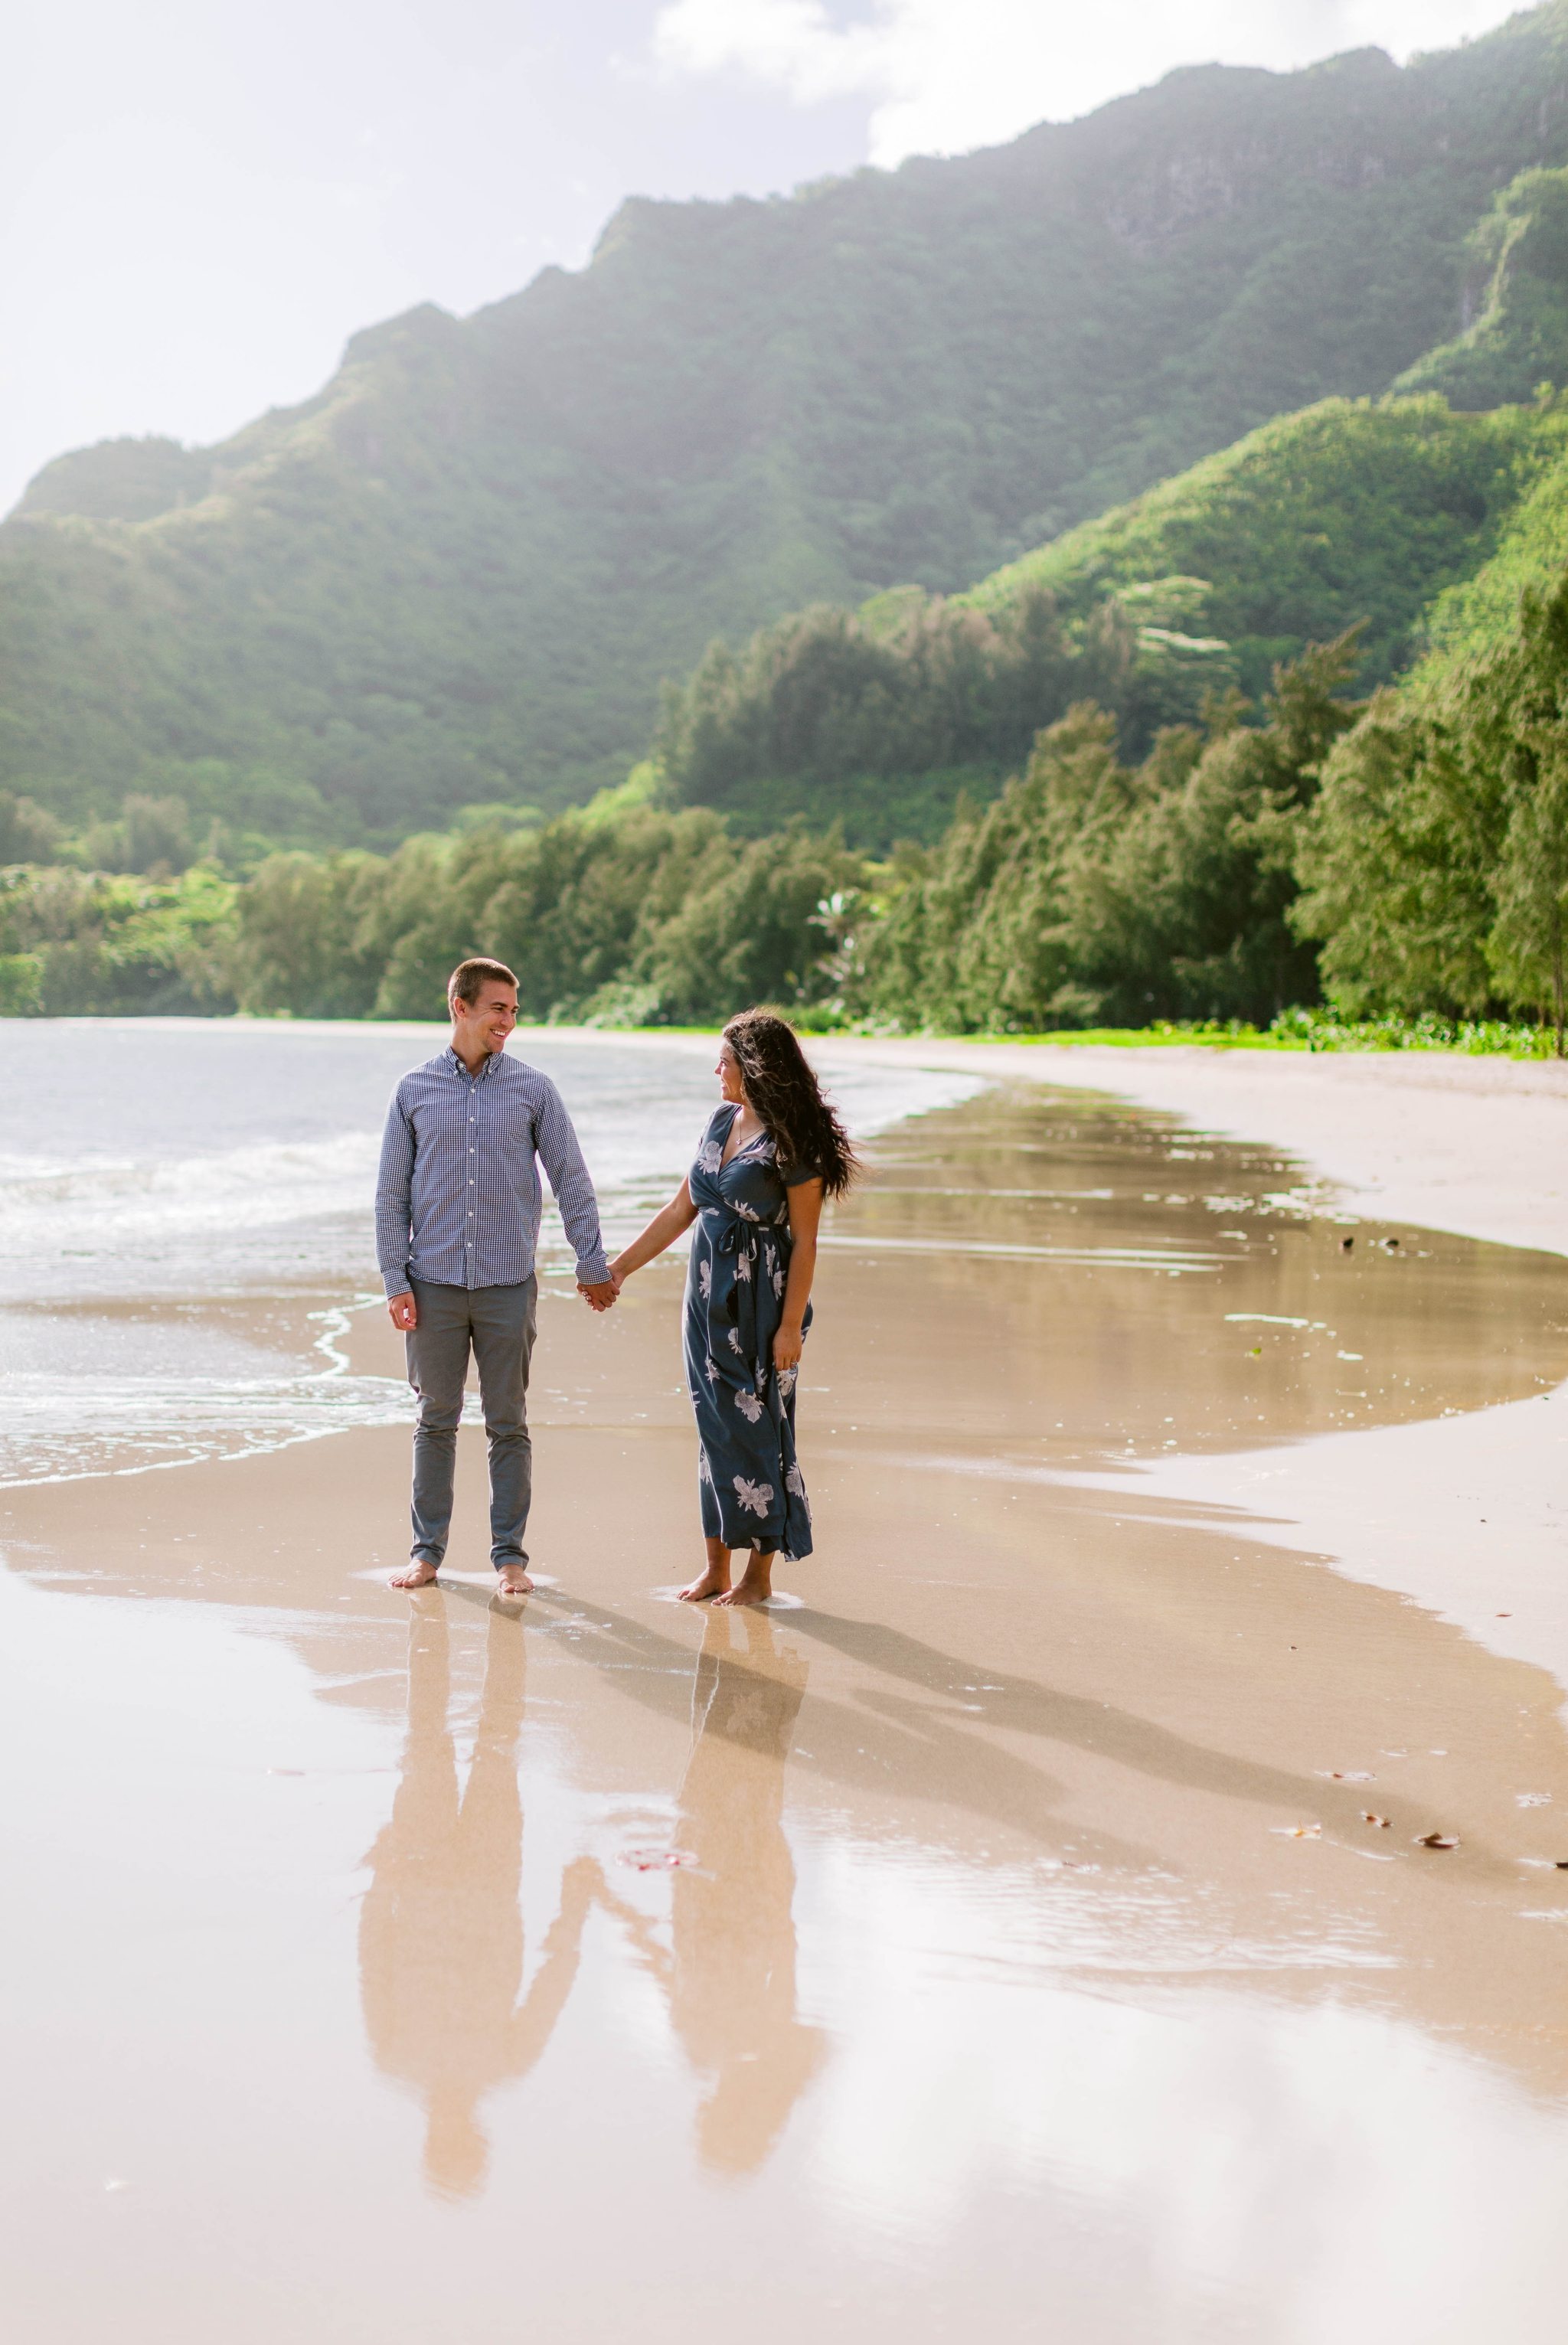 Couple at the shore with their reflections in the sand - Rilee + Max - Beach Engagement Session at Kahana Bay in Kaaawa, HI - Oahu Hawaii Wedding Photographer - #hawaiiengagementphotographer #oahuengagementphotographer